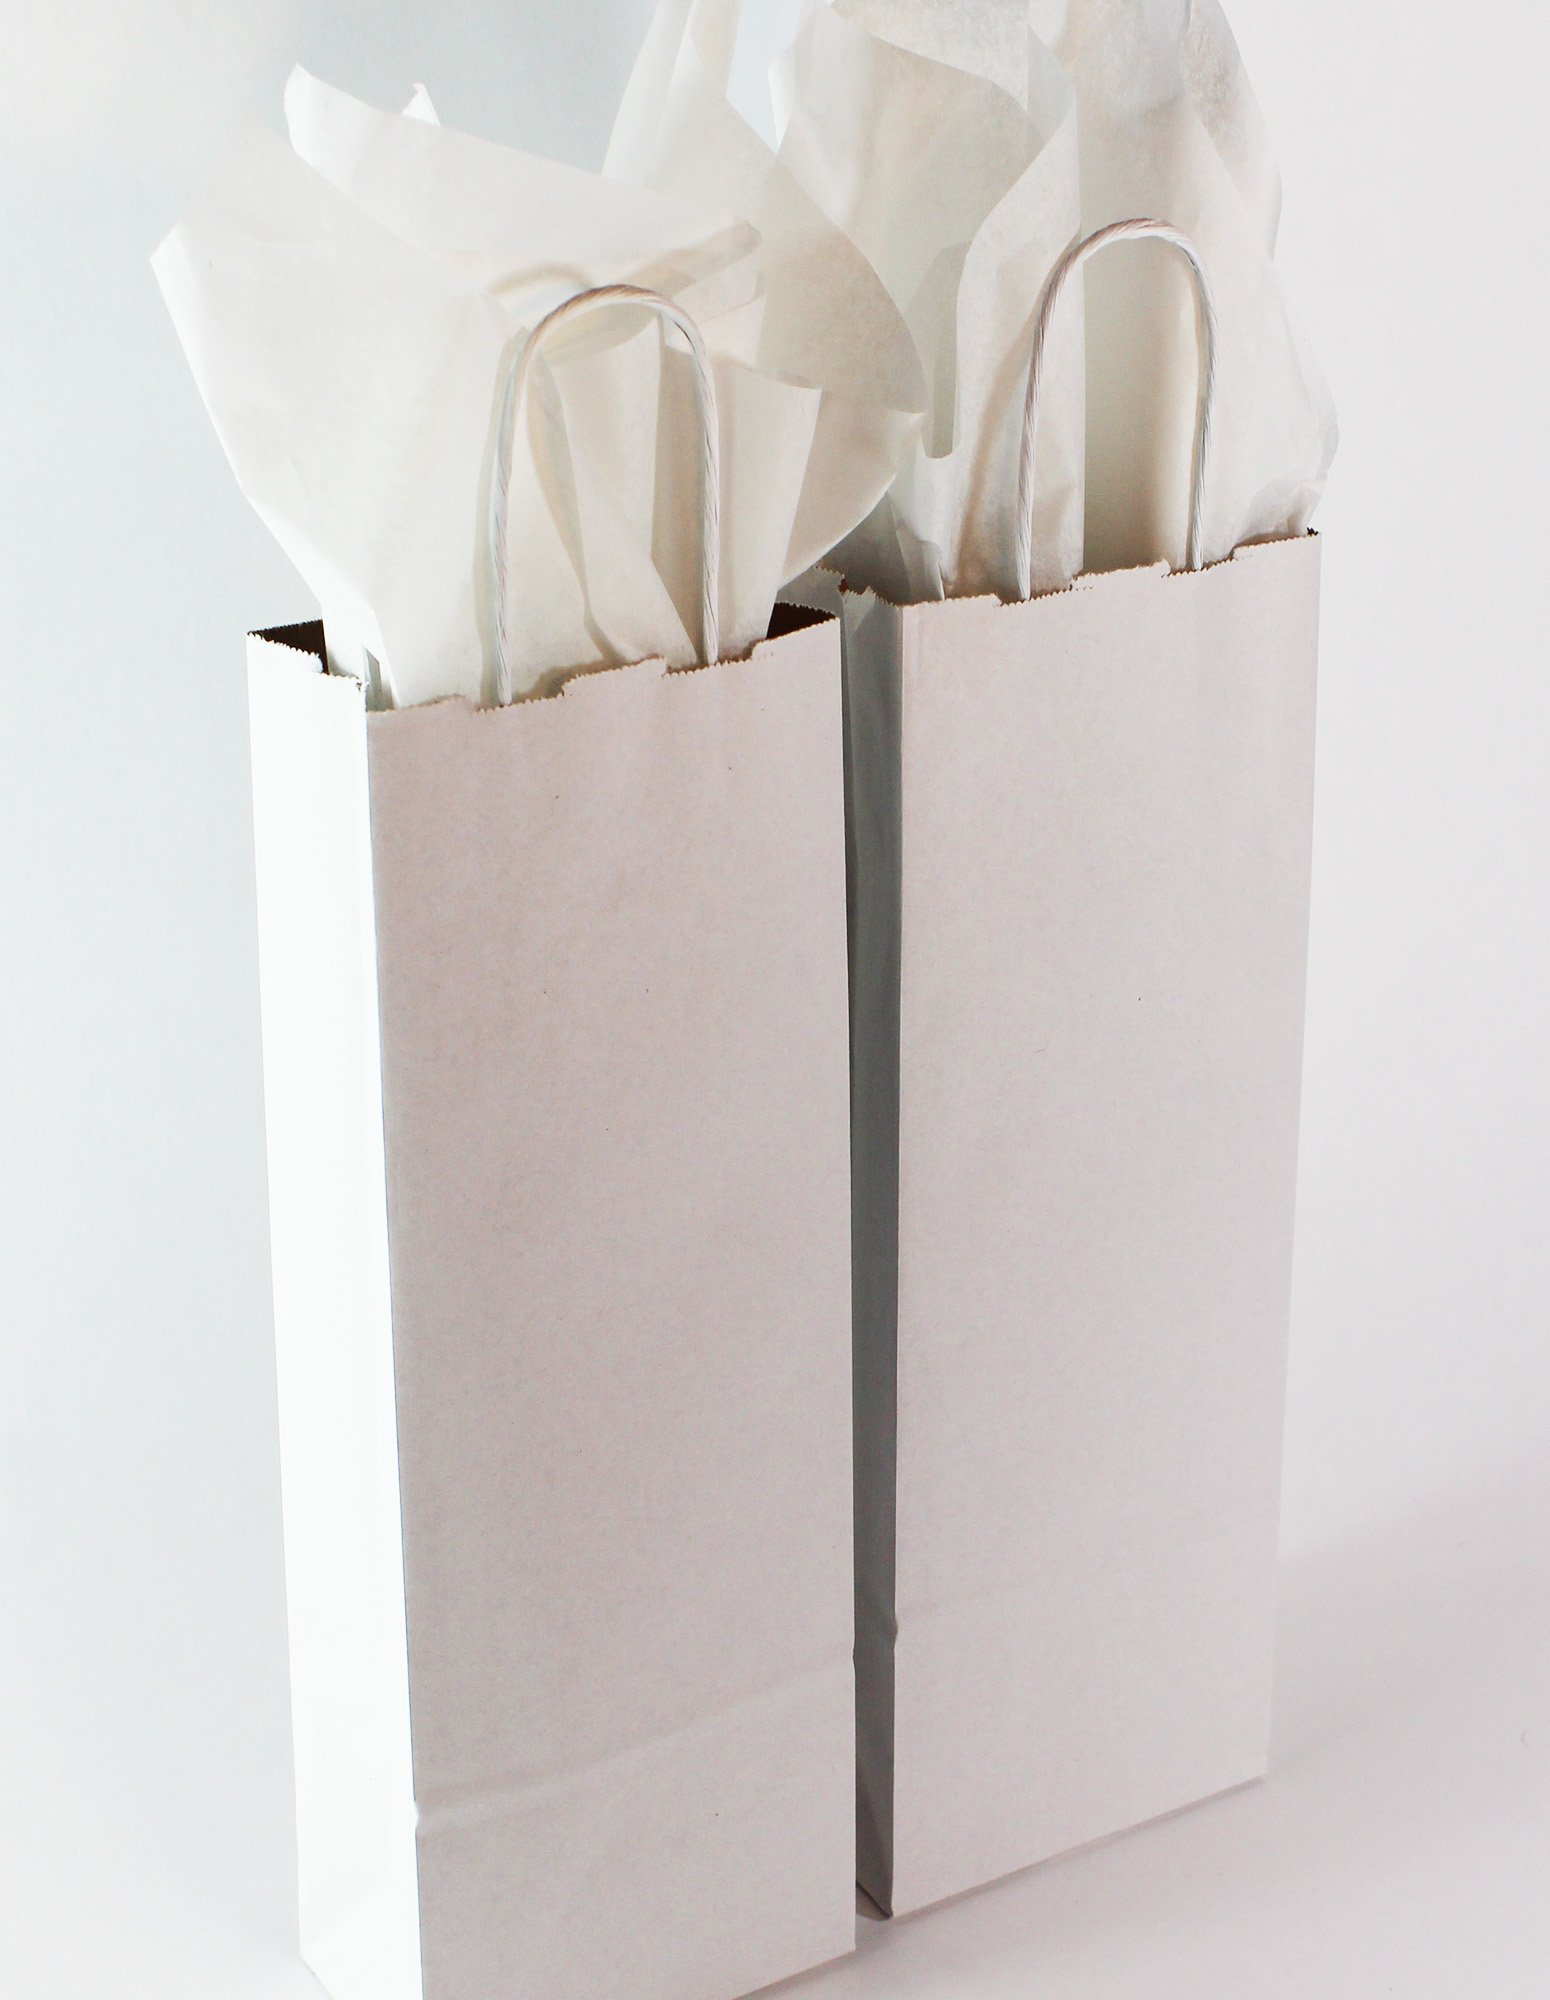 Kraft Paper Wine Bags with Handles & Tissue Paper, Bulk 50 Pack. Premium Quality, 100% Recycled, Eco-Friendly, Reusable. Made in USA.5½ x 3¼ x13 inches. White